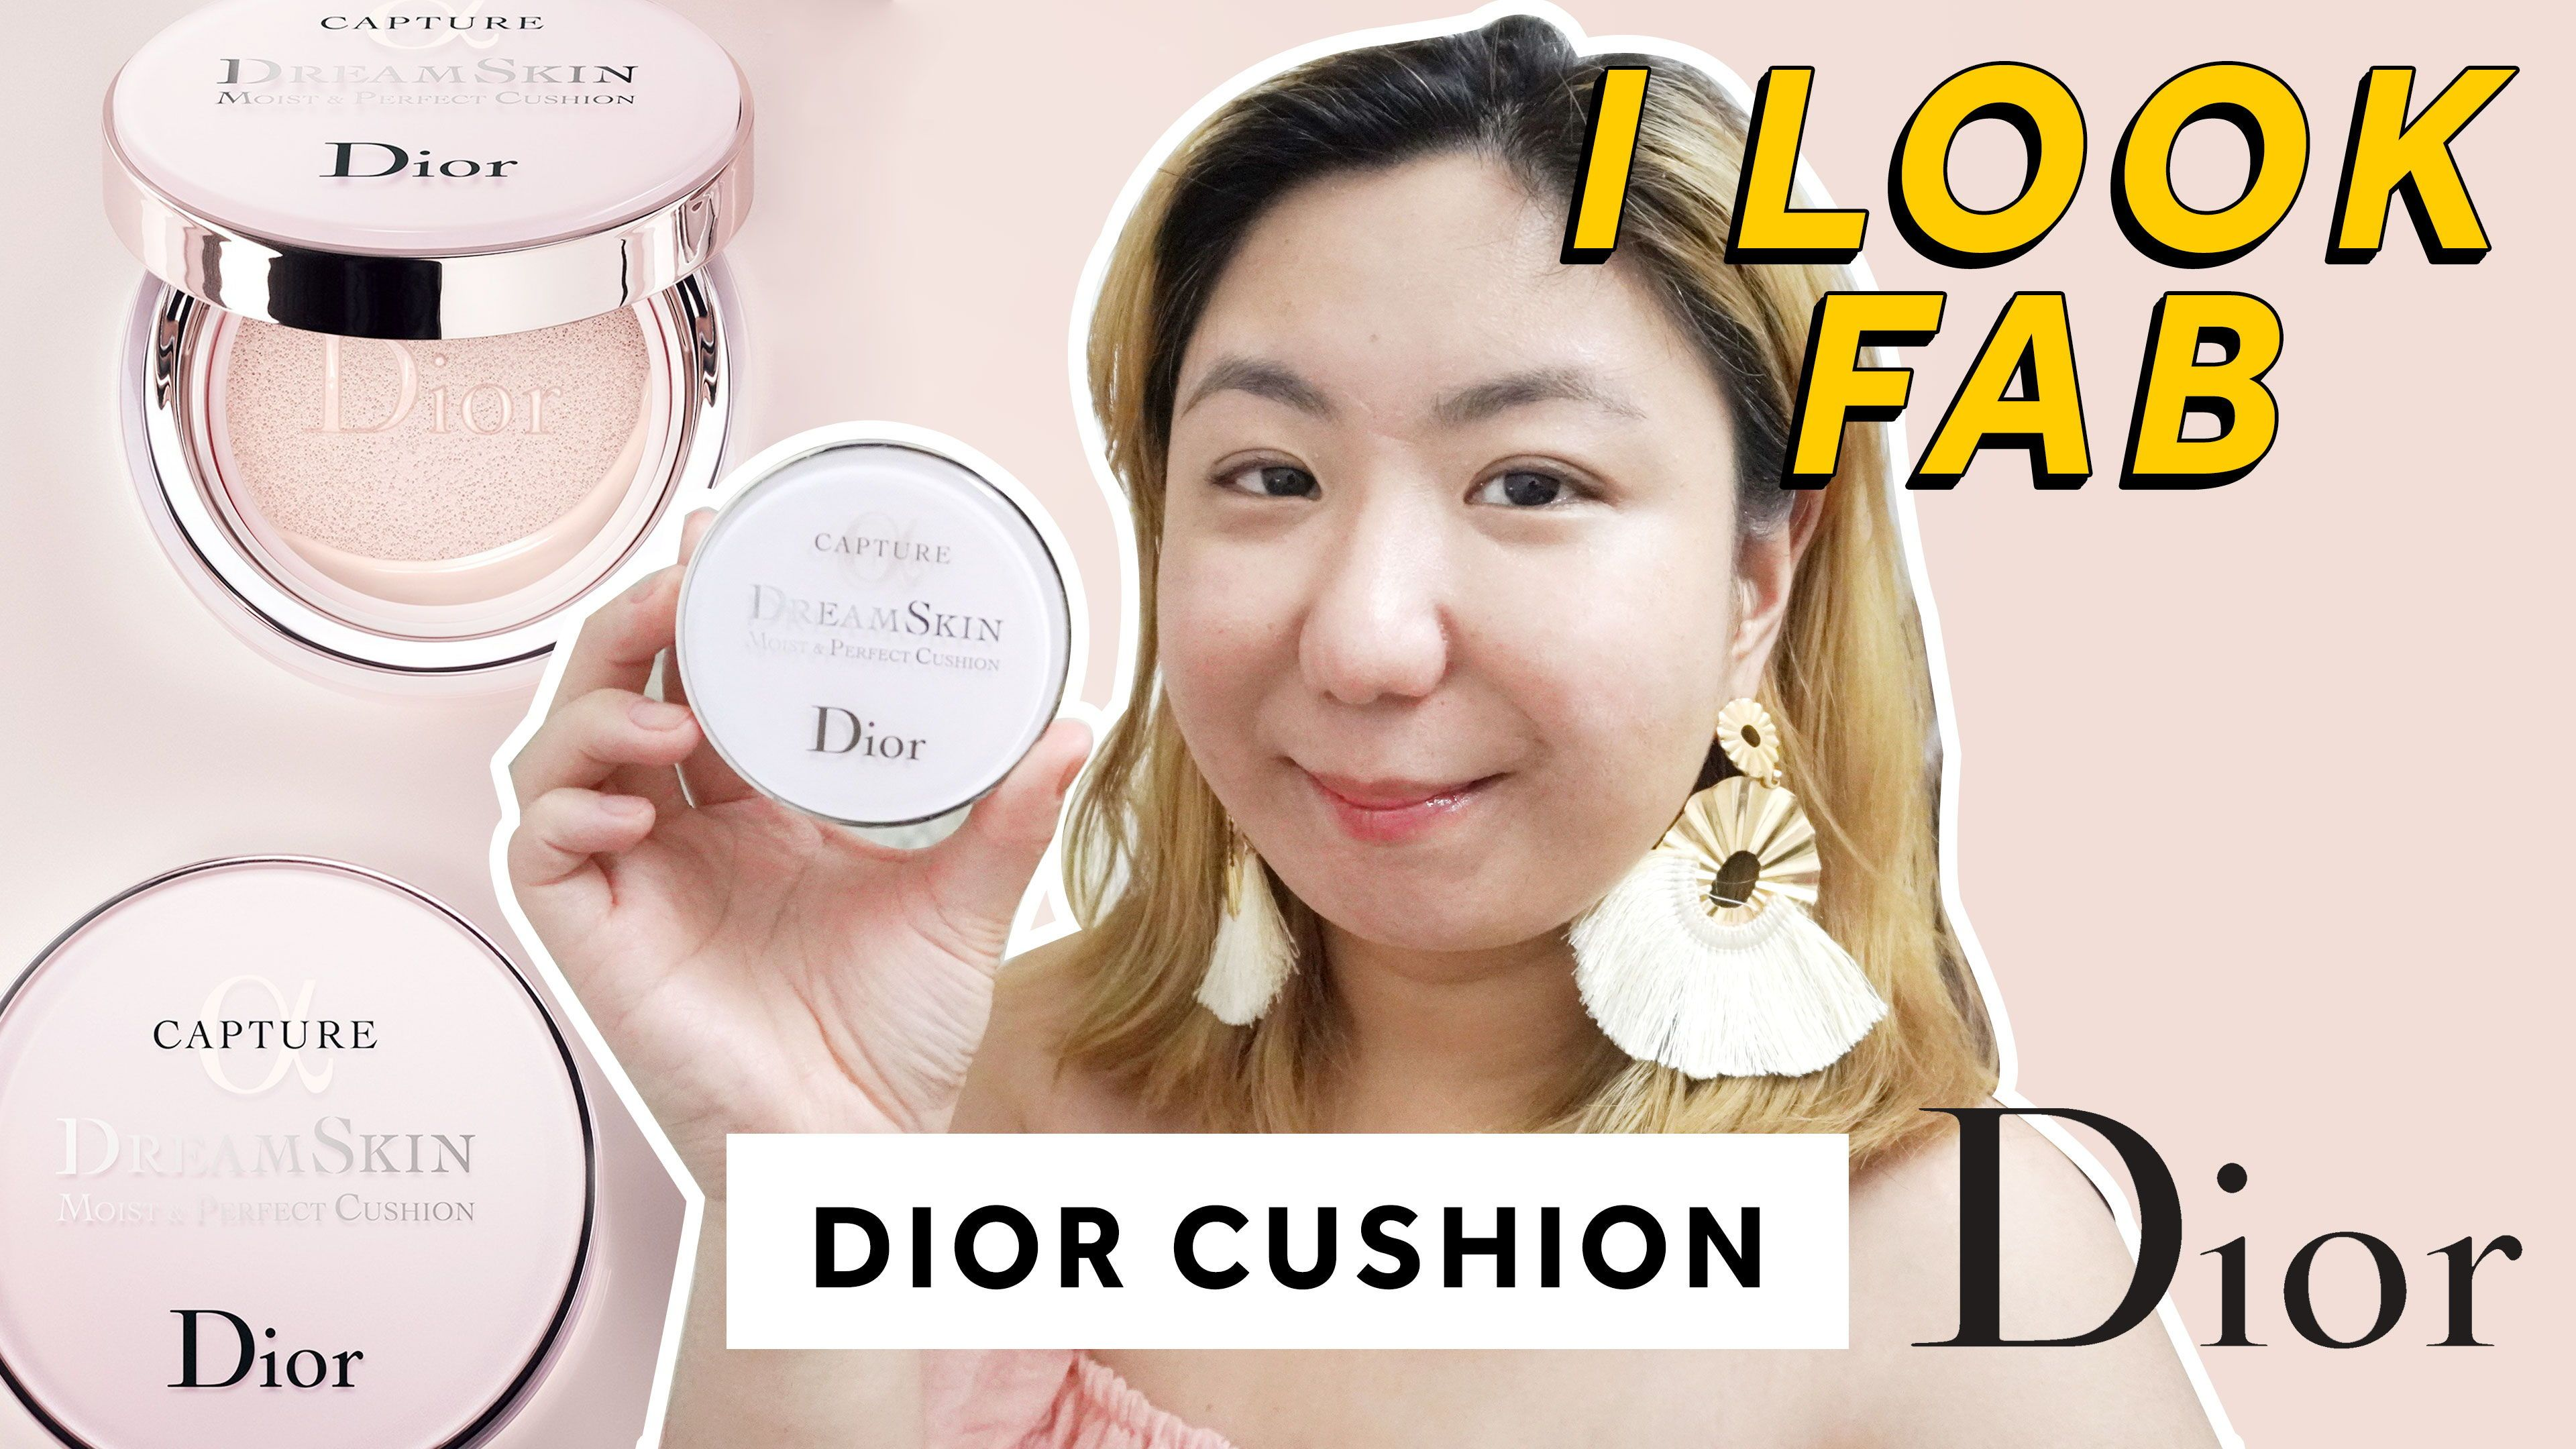 Dior Cushion Is One Of My Favorite Cushion I Ve Ever Had I Loved That It Is So Moist And Makes My Skin Loo Dior Foundation Makeup Reviews Dior Capture Totale